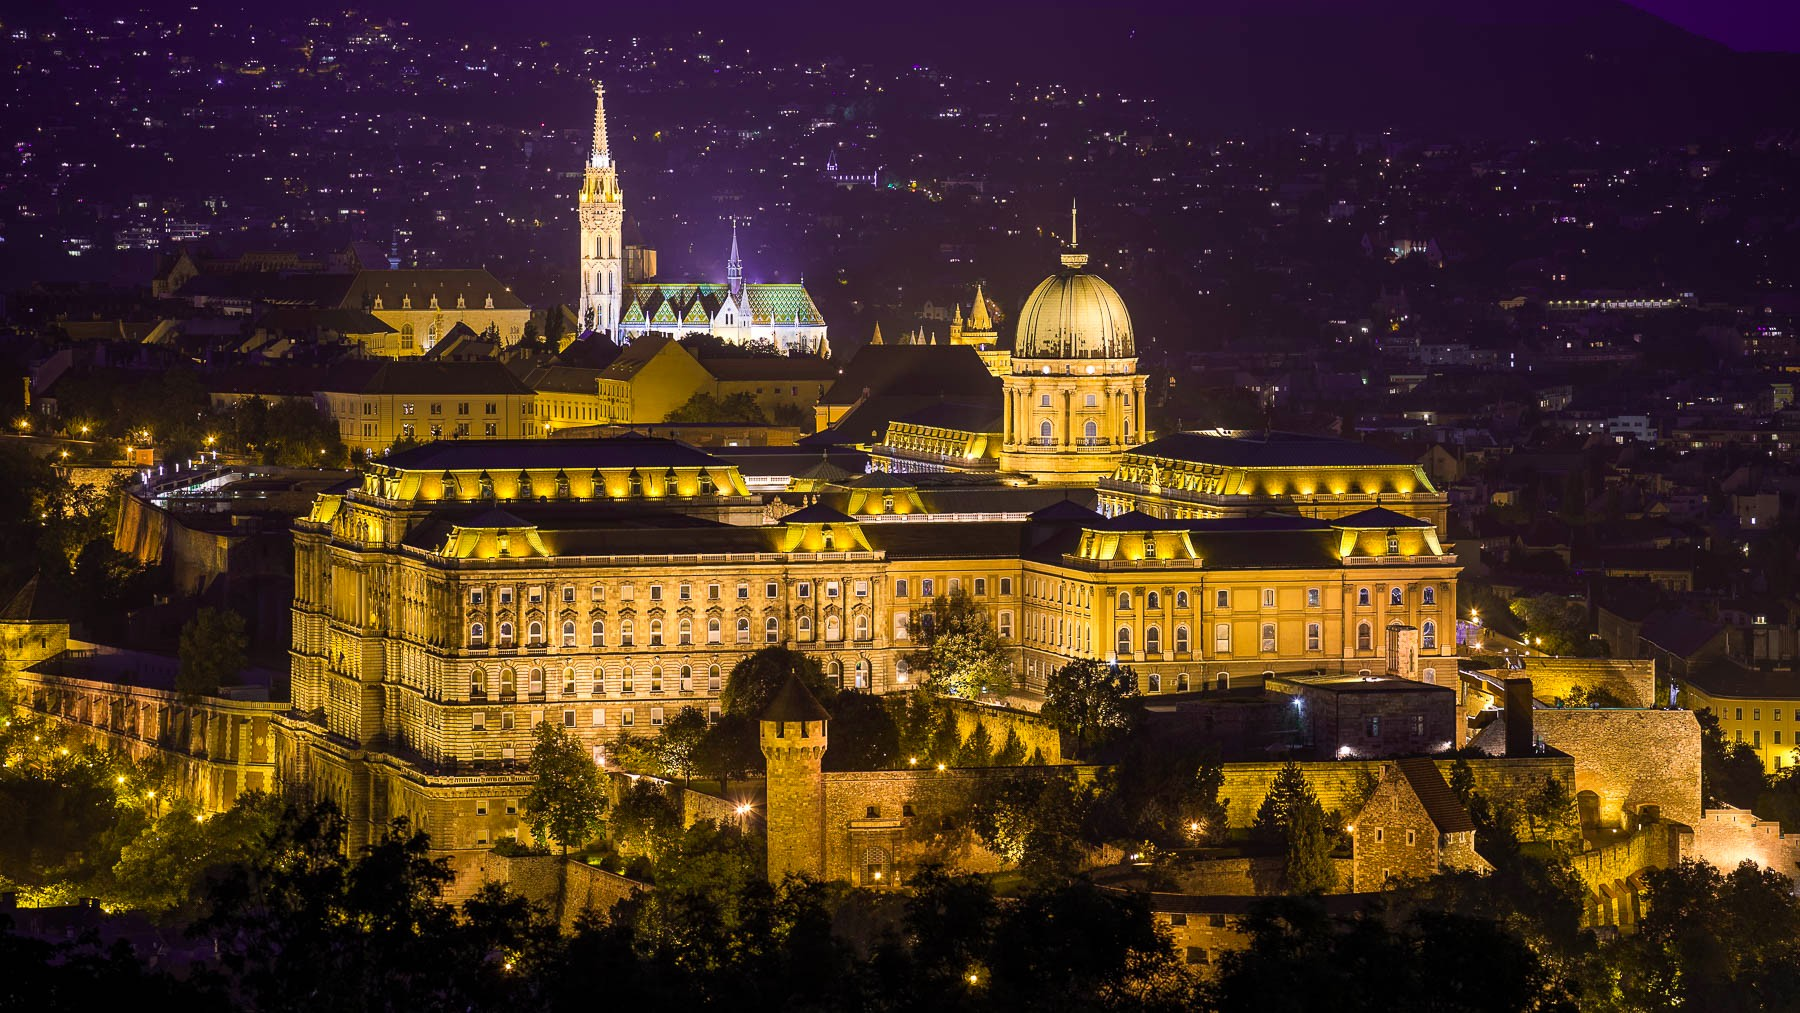 Mathias Church and Buda Castle at night